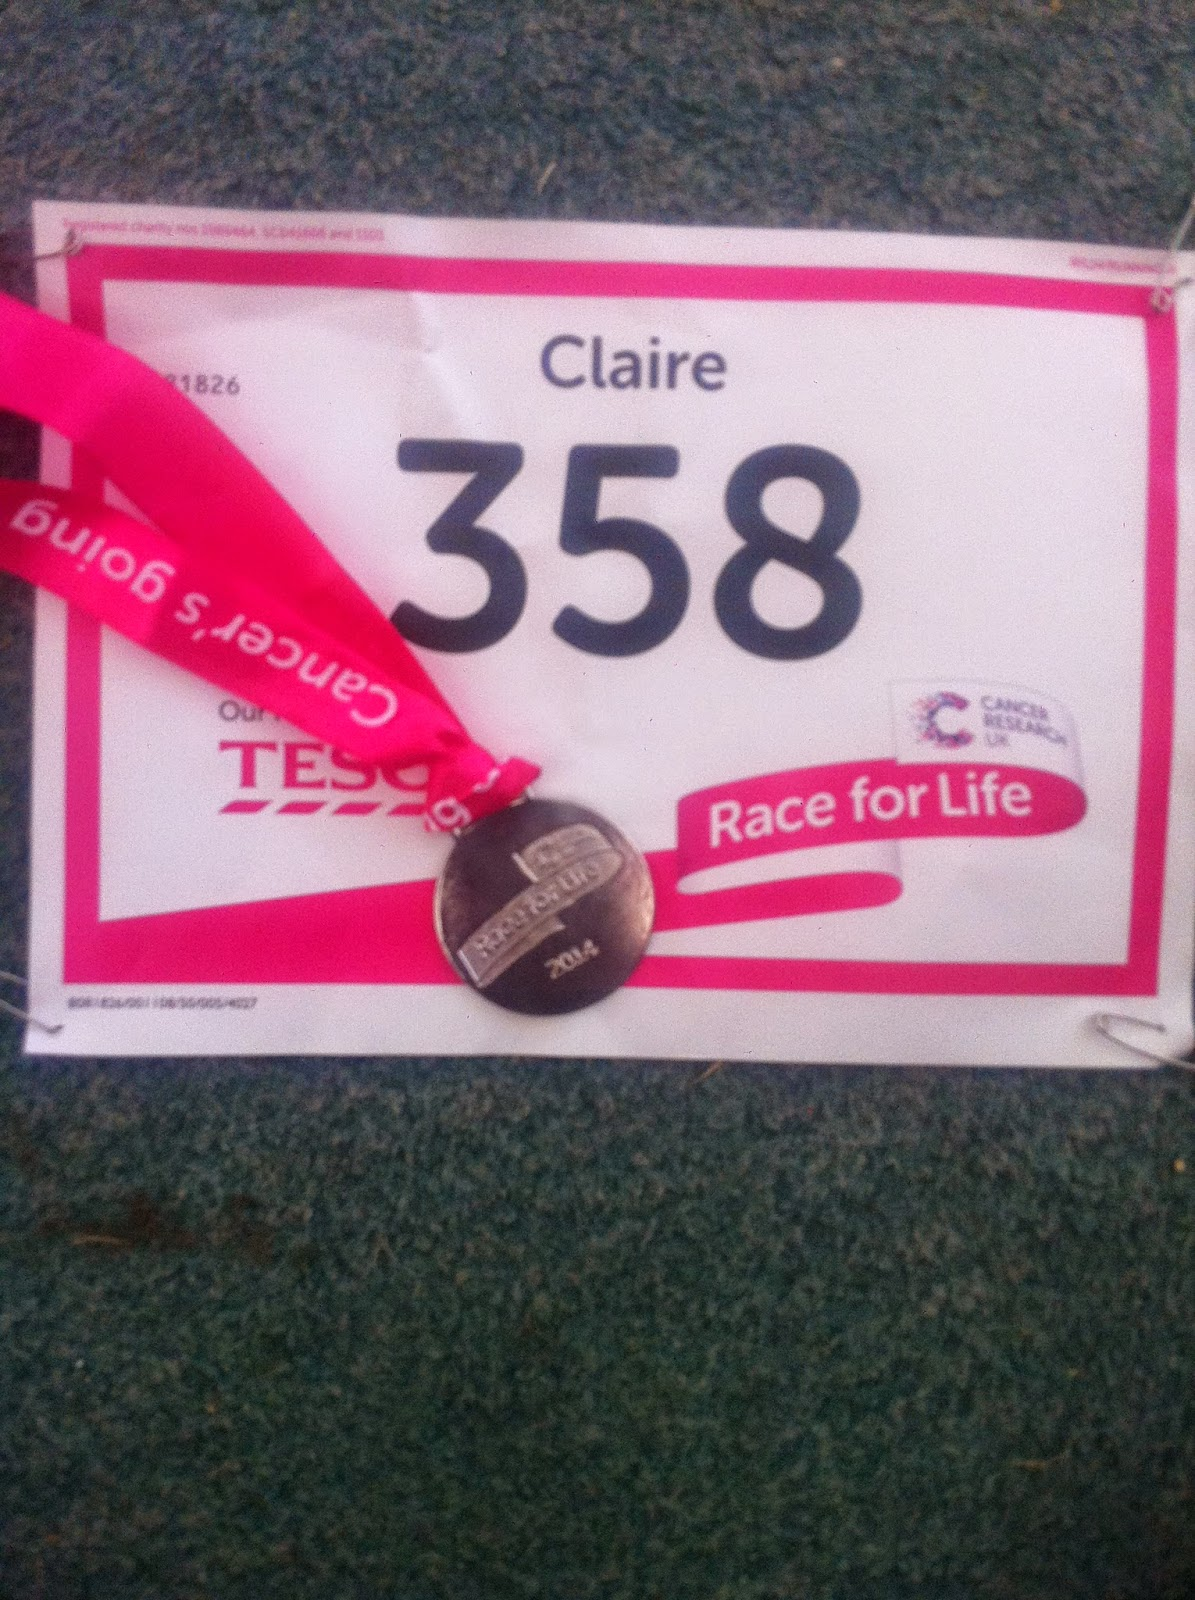 Couch to 5K programme and Race for Life